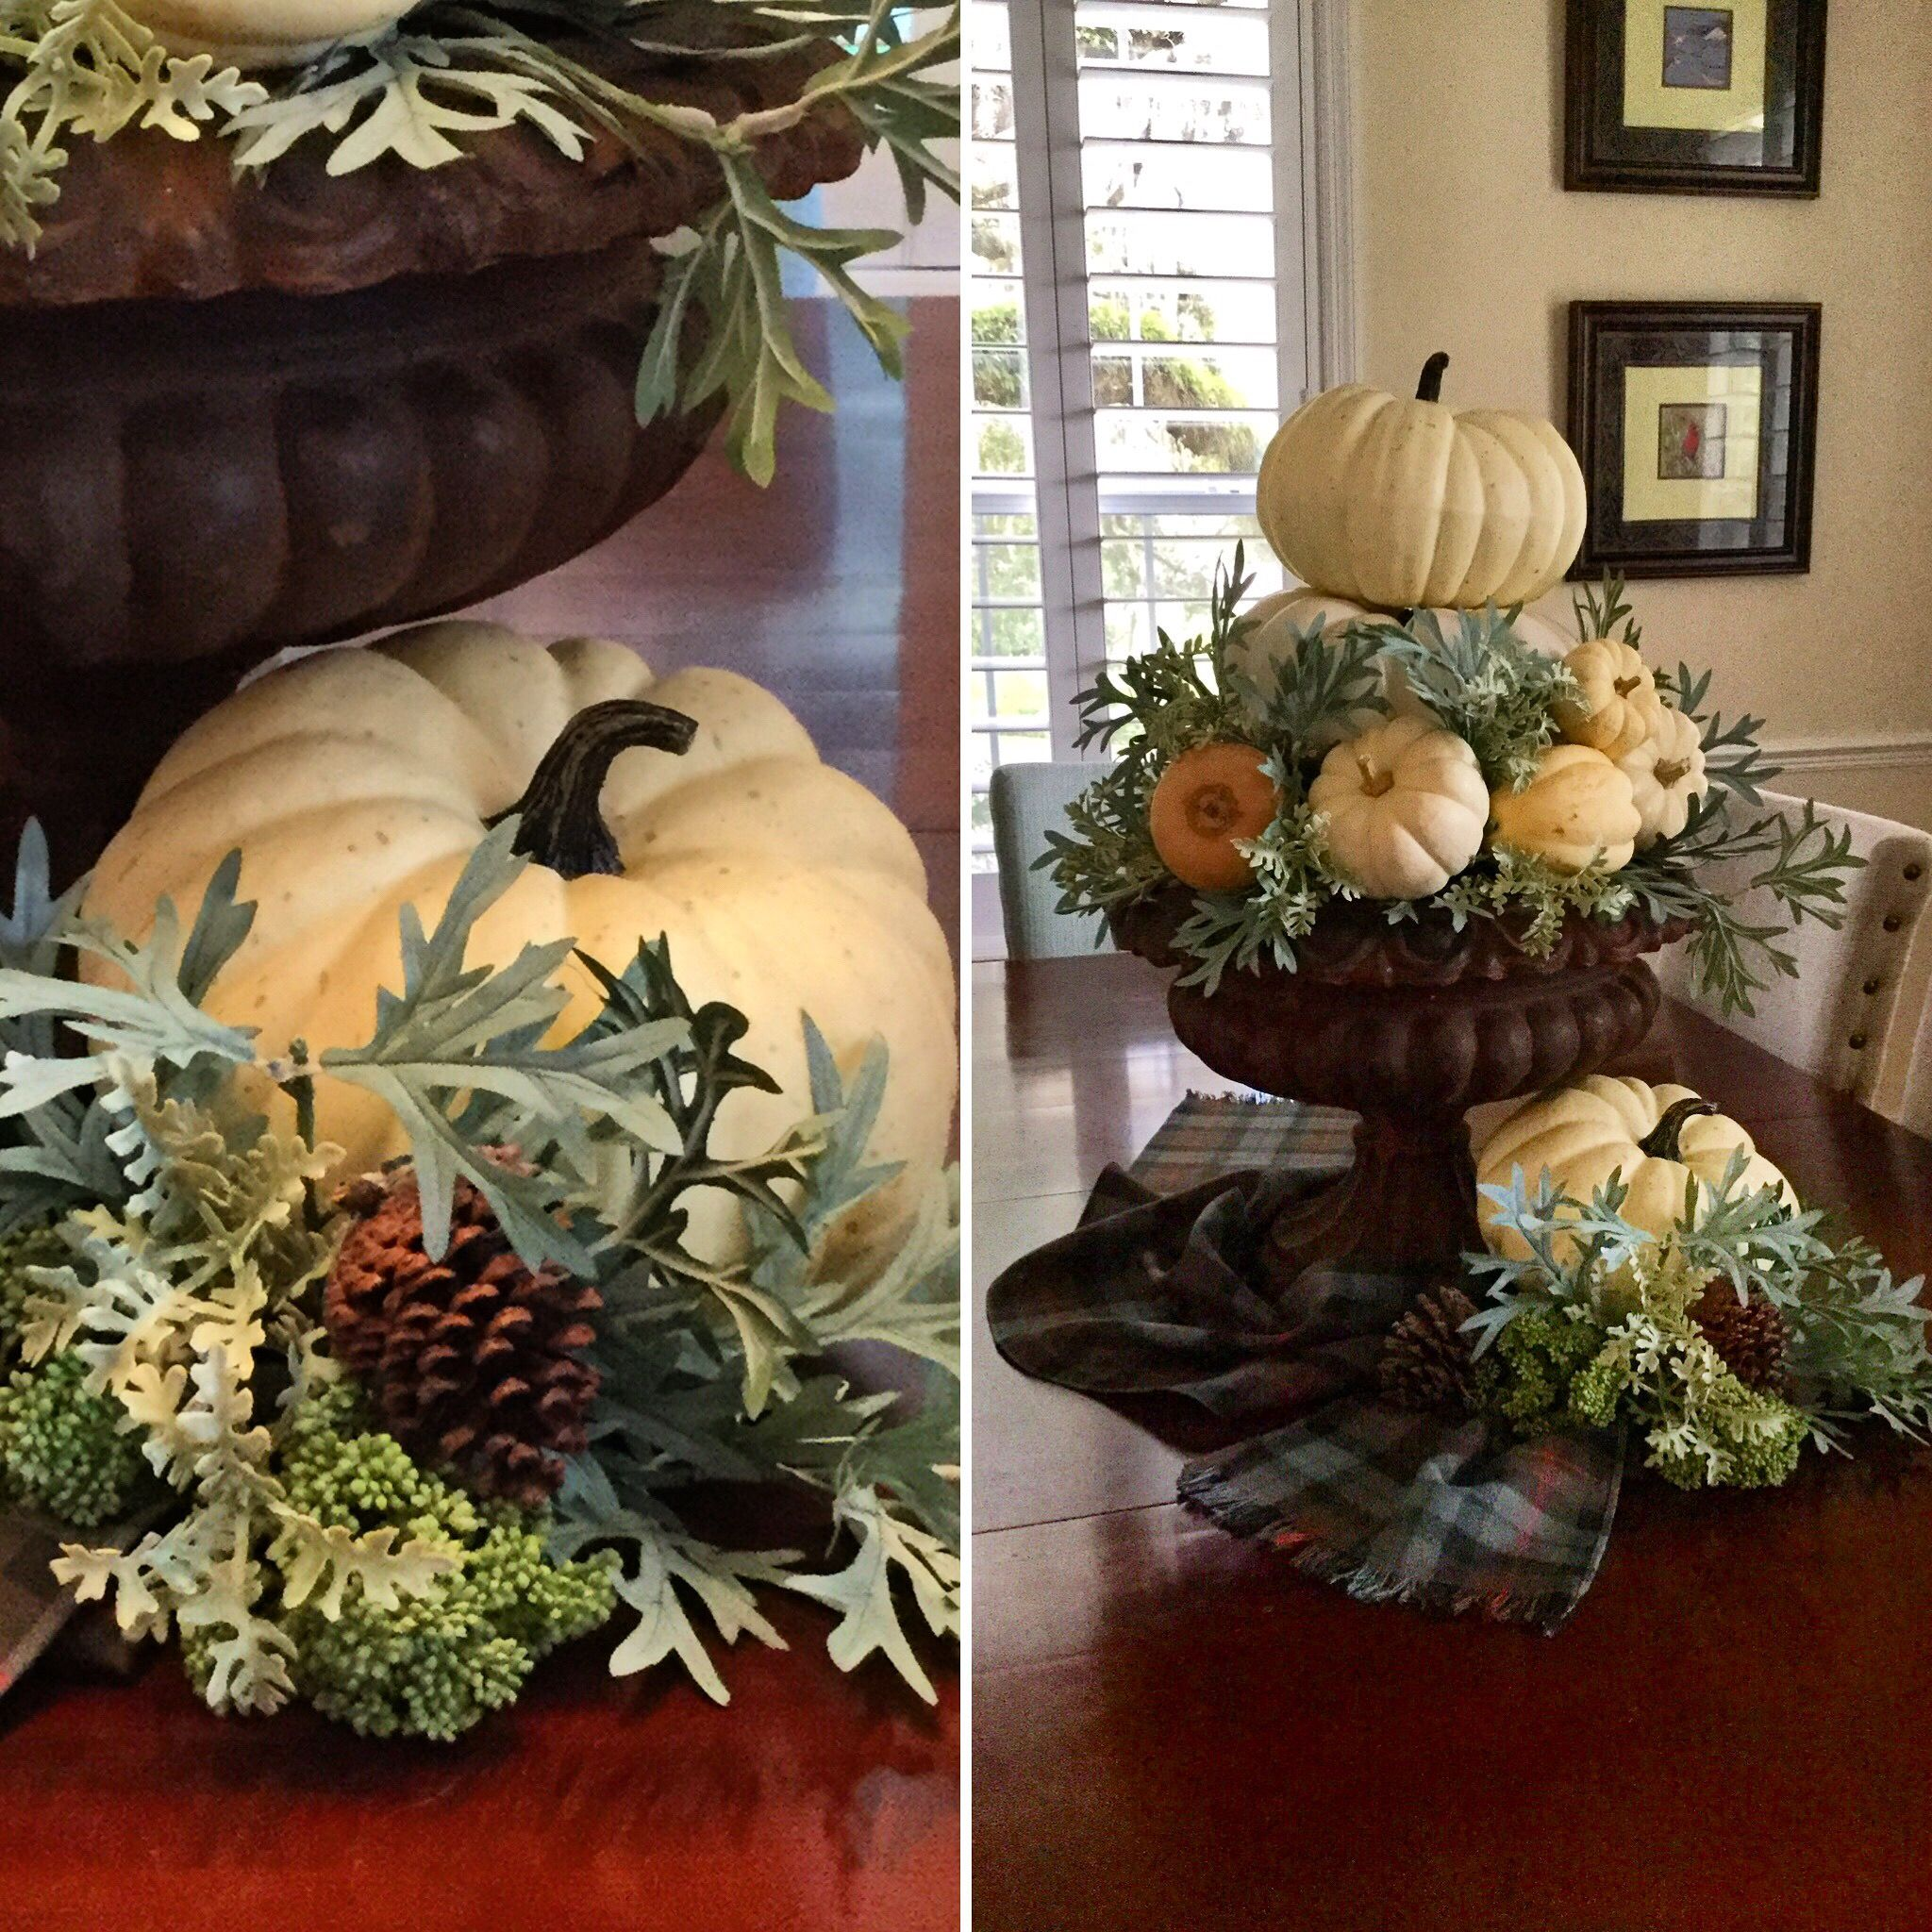 Pin by Lisa Langlois Matlock on Thanksgiving Pinterest - Halloween Table Decorations Pinterest